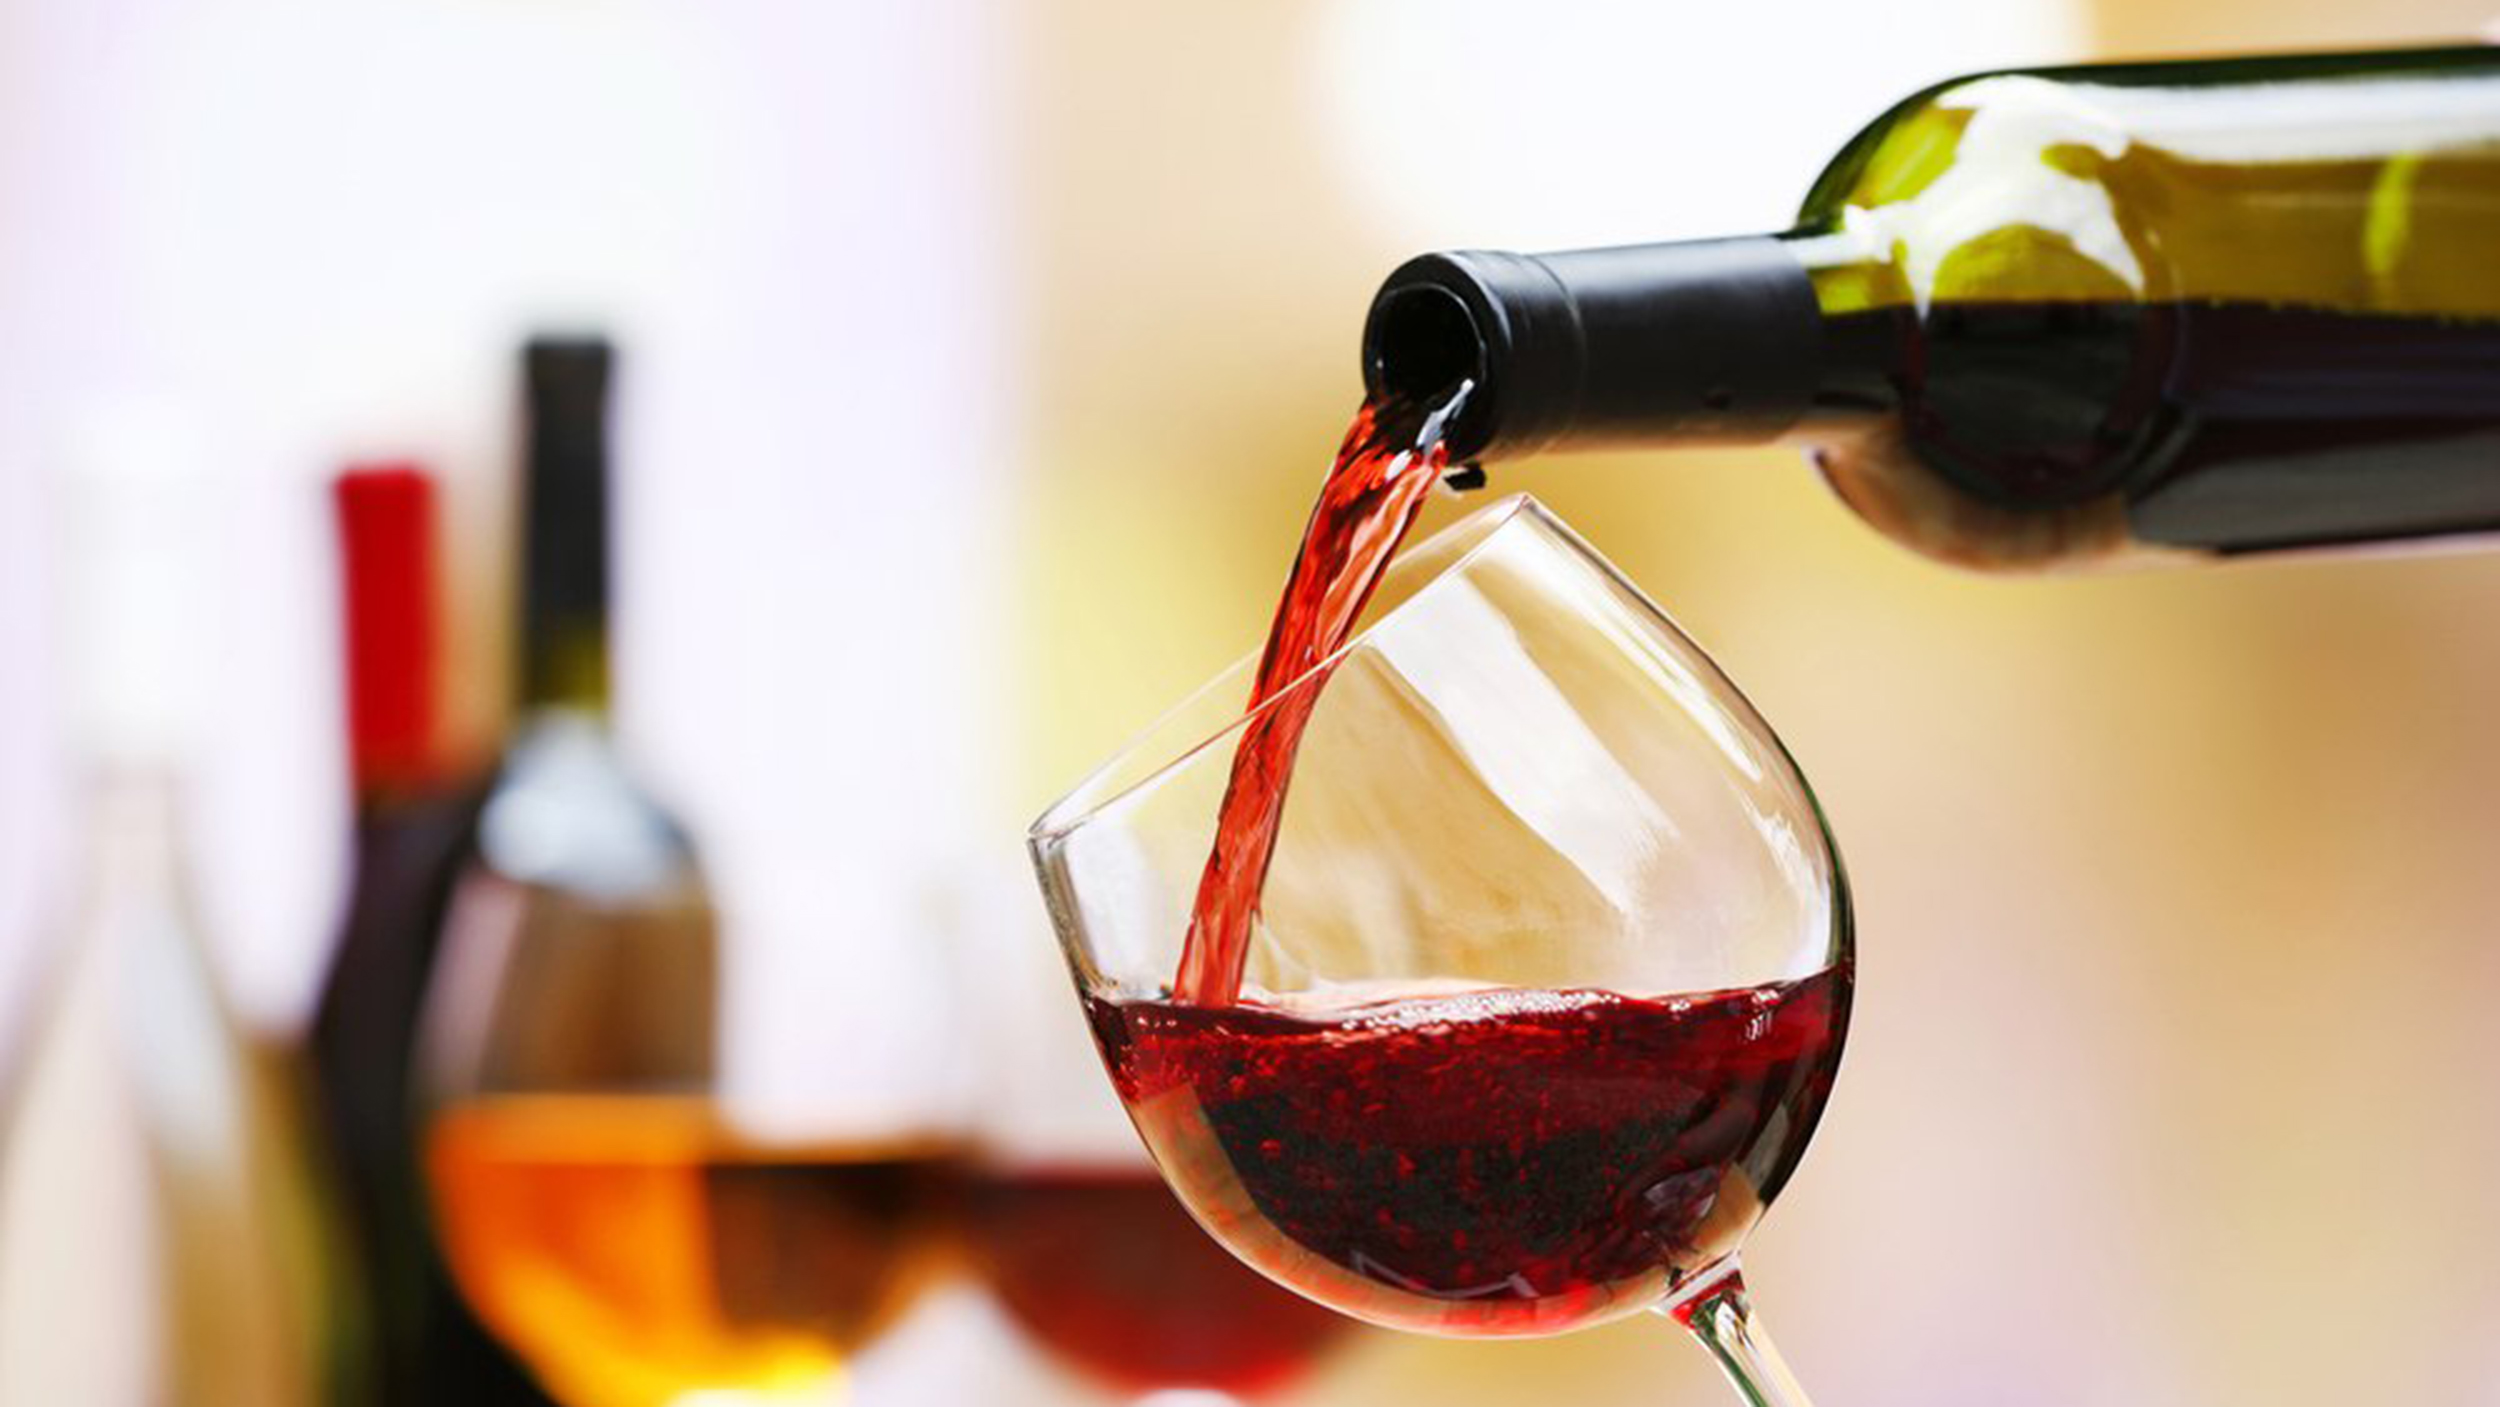 Luxury Wine Market | Luxury Spirits Market | US Market Analysis Report by 2025